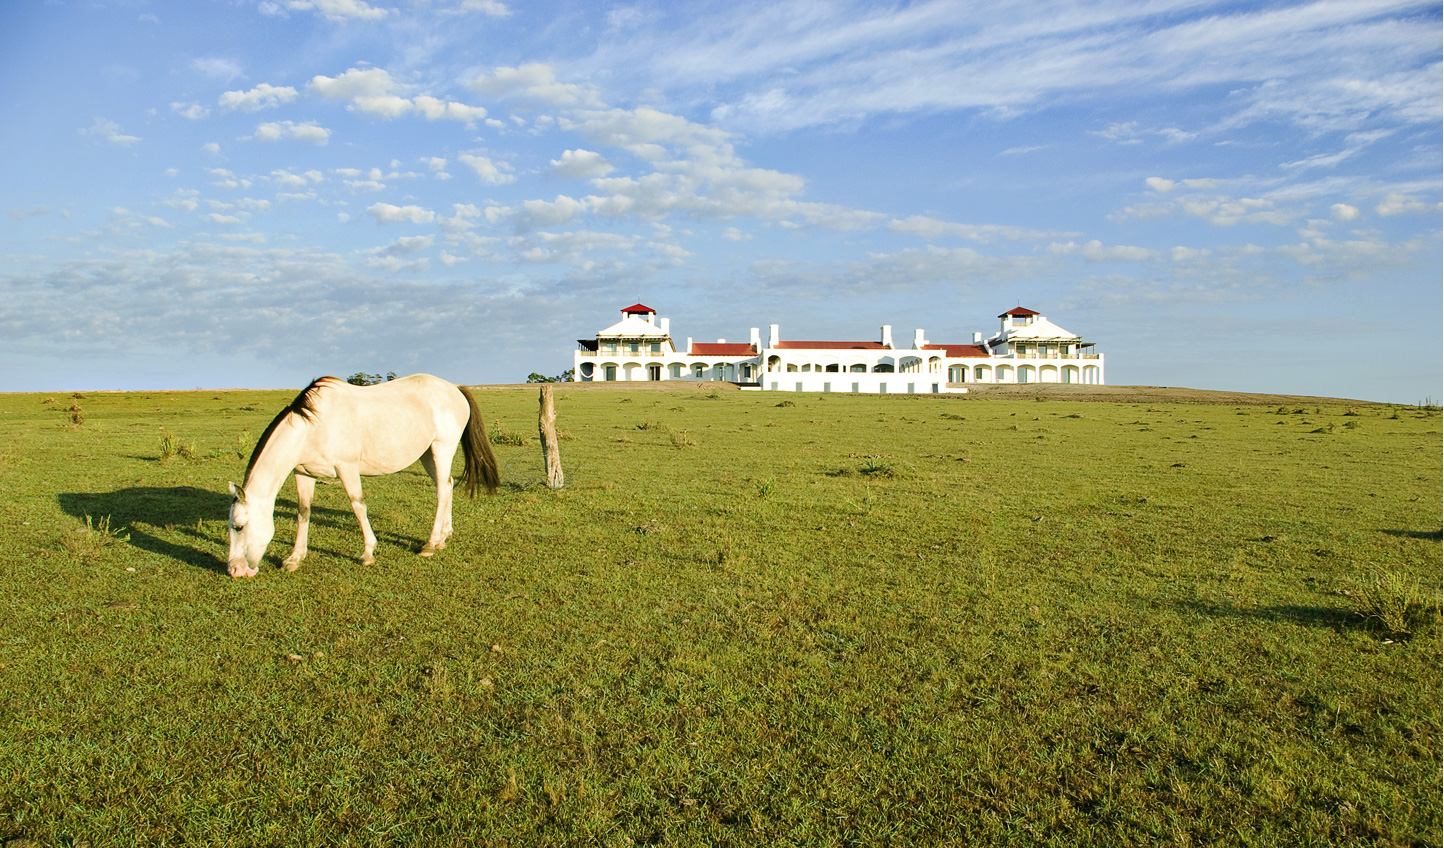 Move on to Uruguay and stay at Estancia Vik